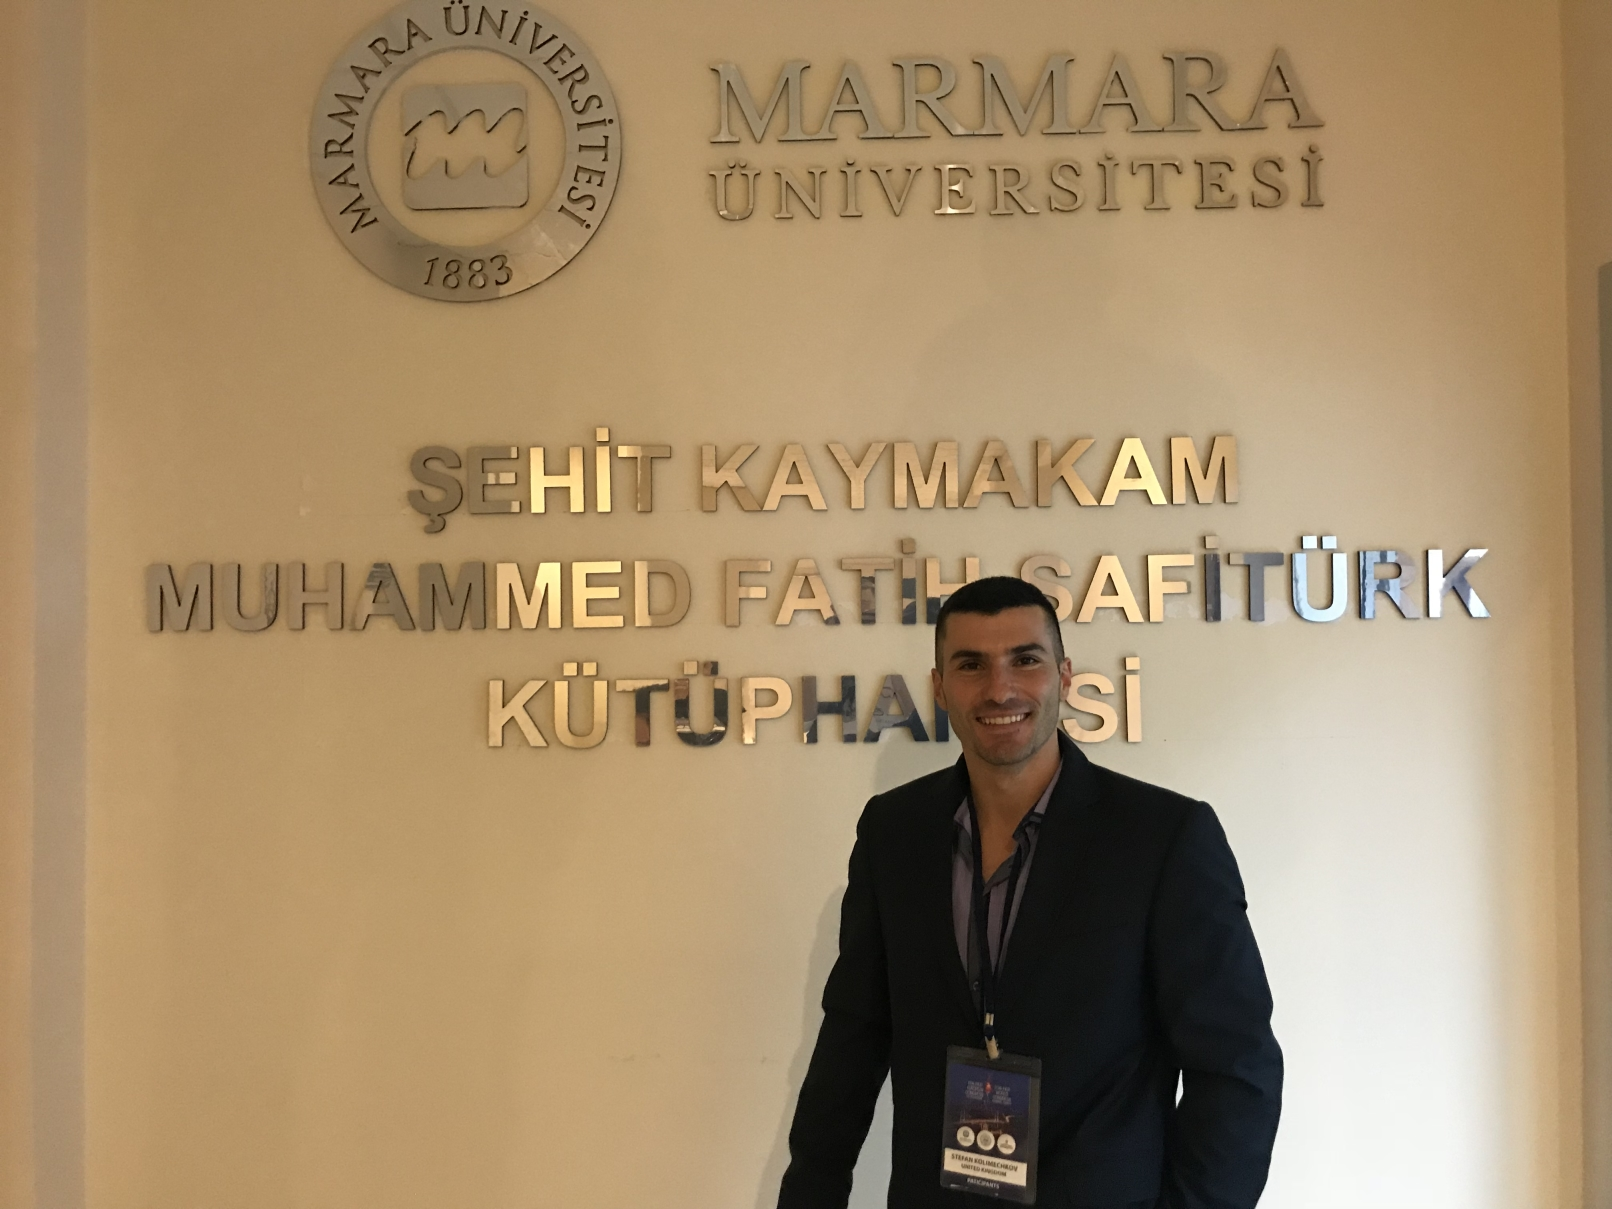 Dr Stefan Kolimechkov speaks at Marmara University